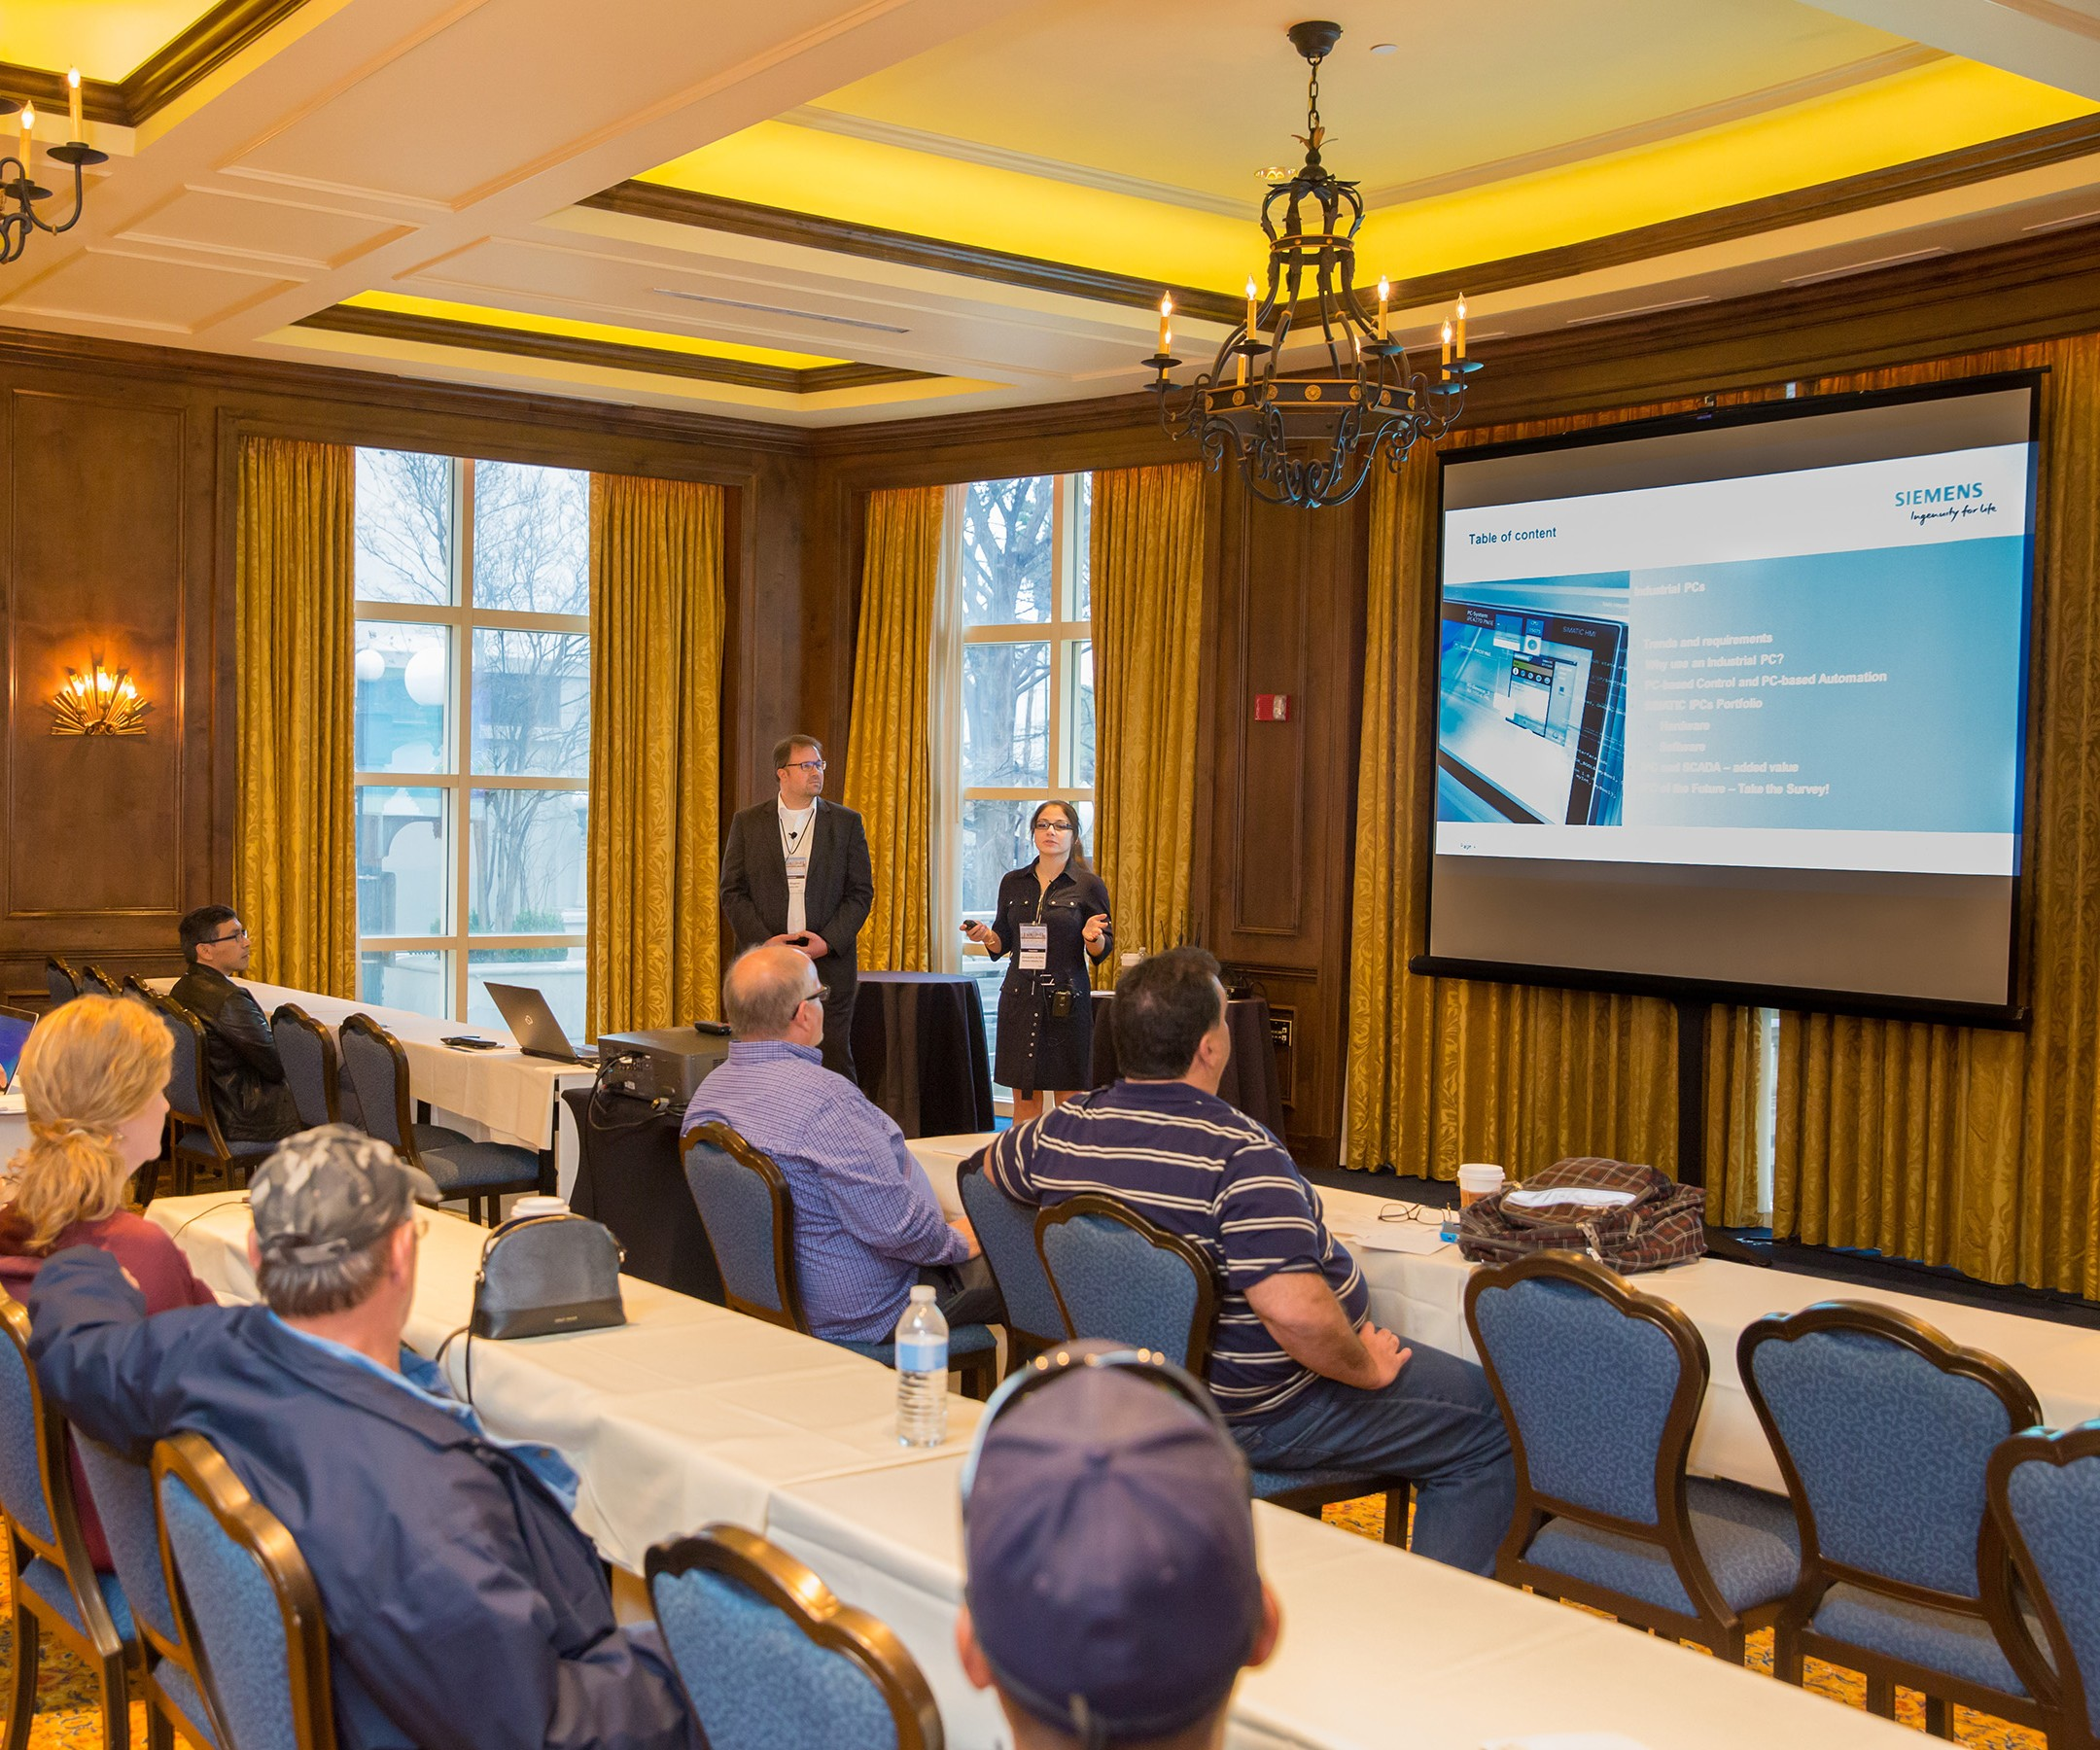 A presentation at Siemens' SCADA/IPC Days 2018